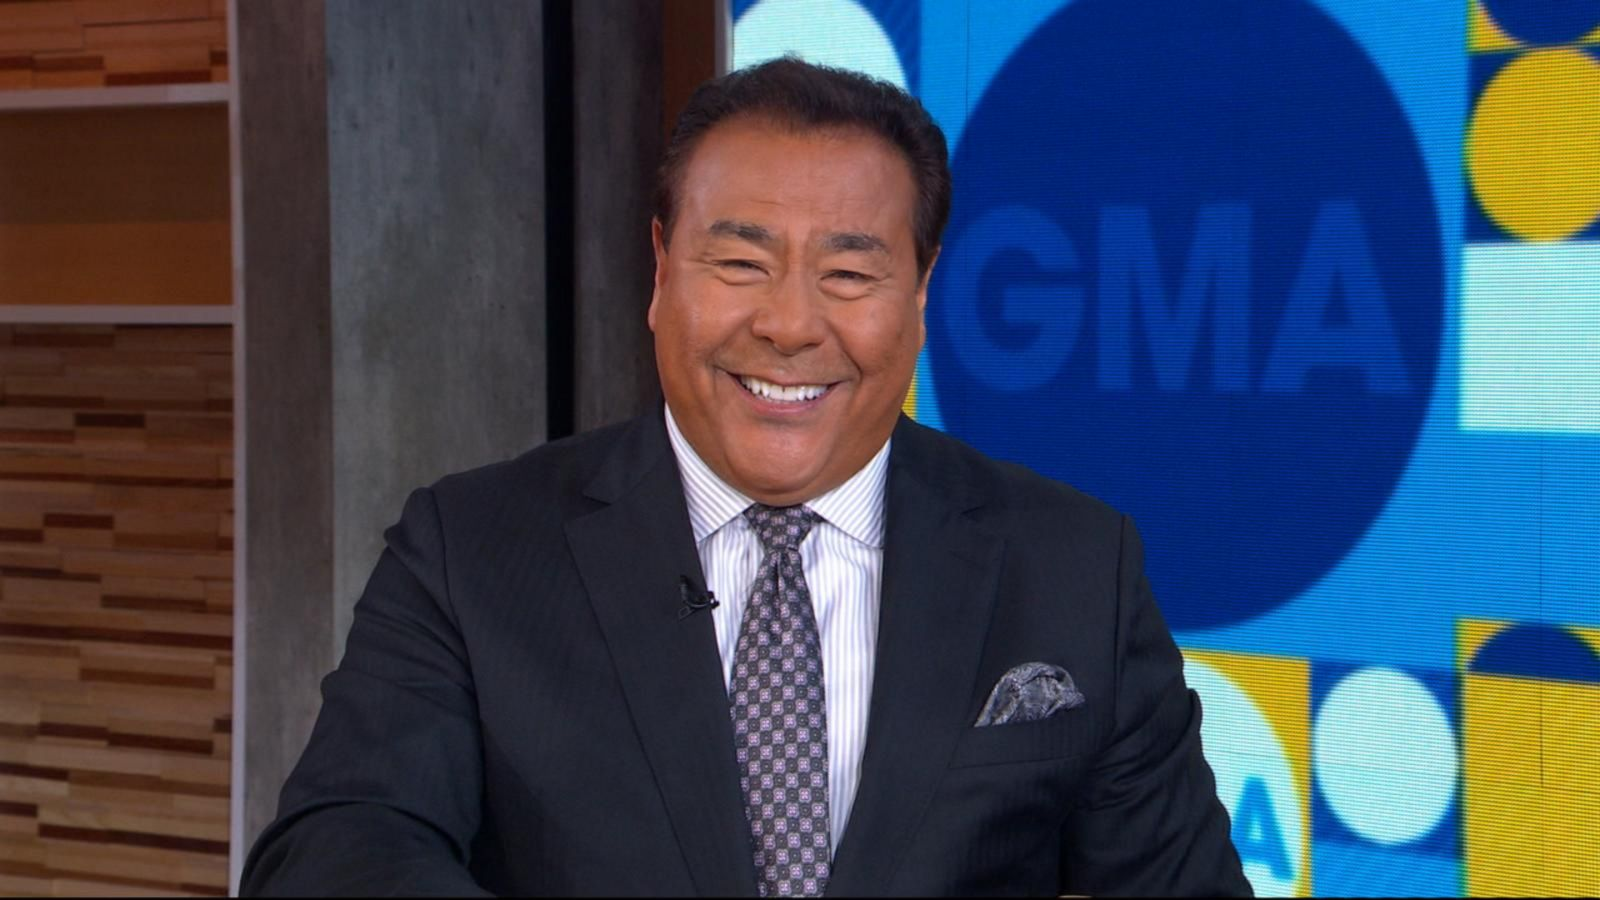 John Quinones shares a clip from new season of 'What Would You Do?'